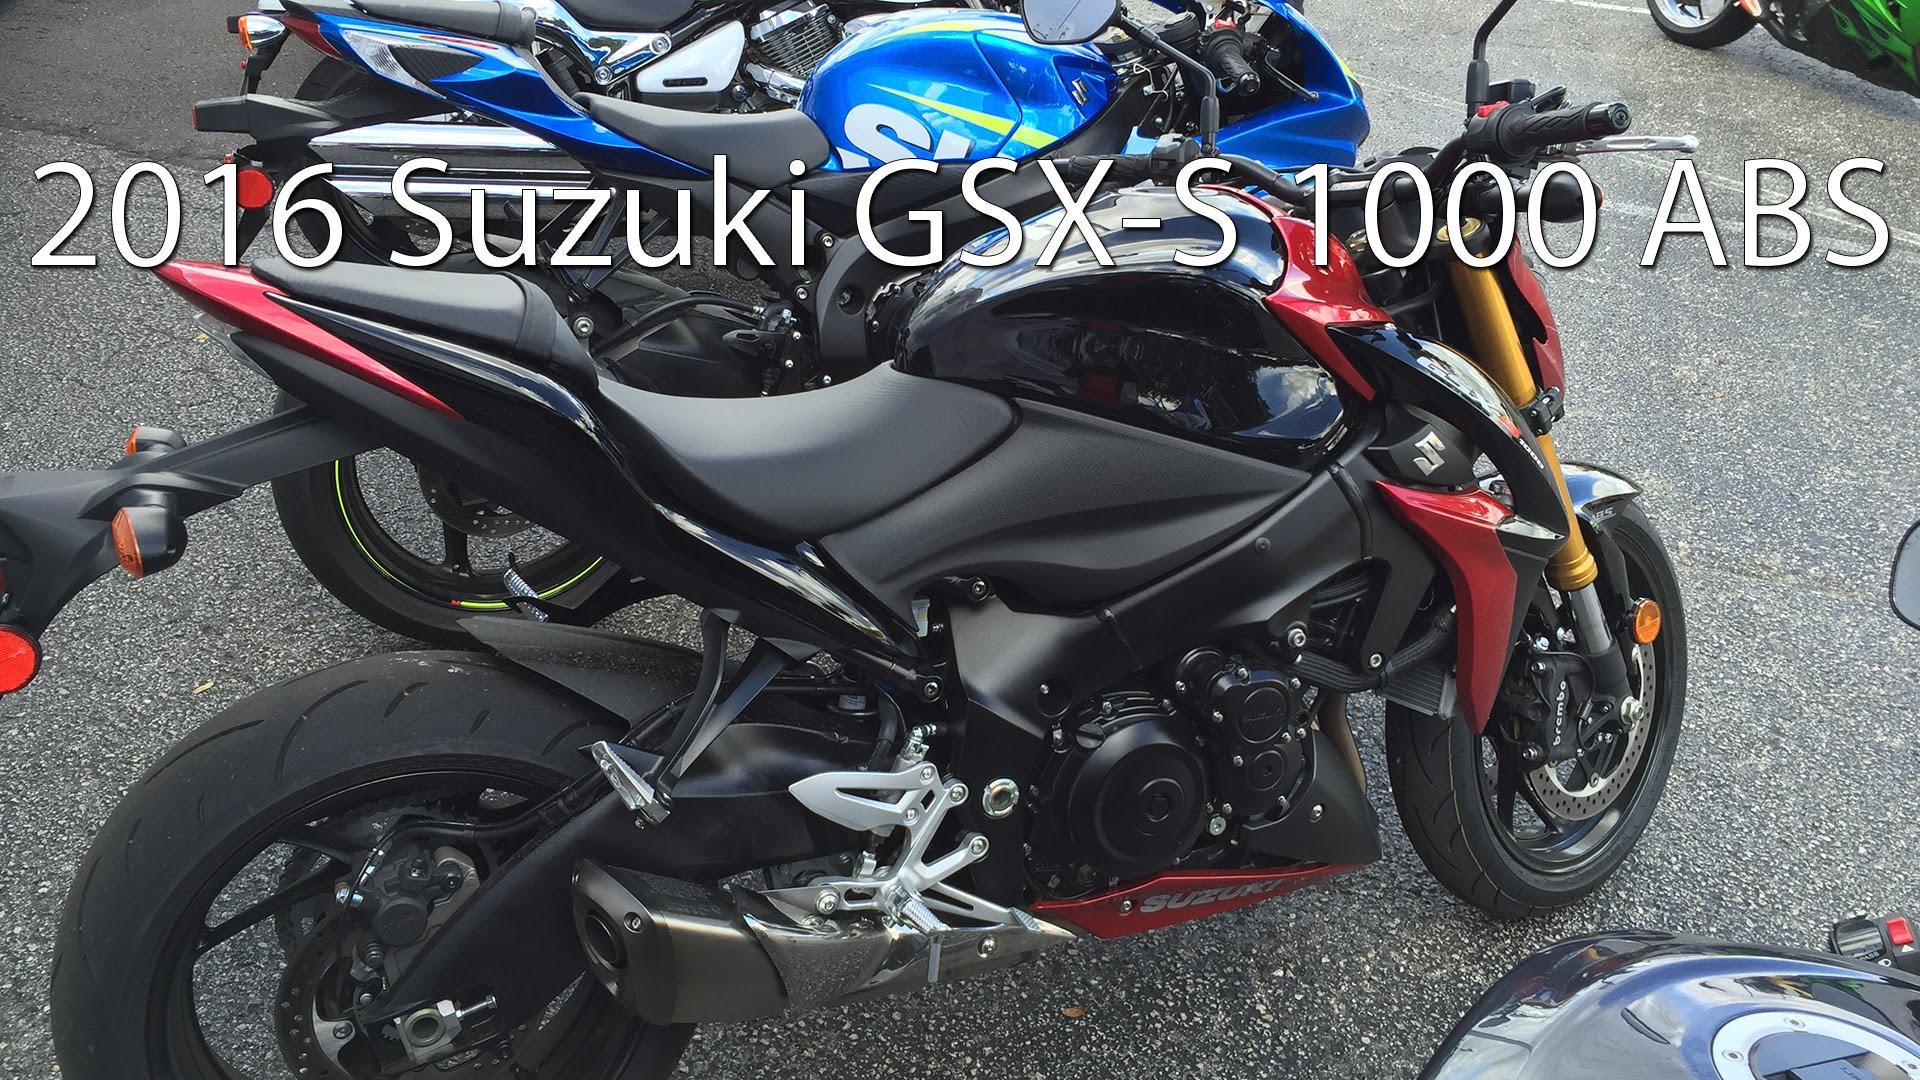 You are Going To Want The 2016 Suzuki GSX S 1000 ABS In Your